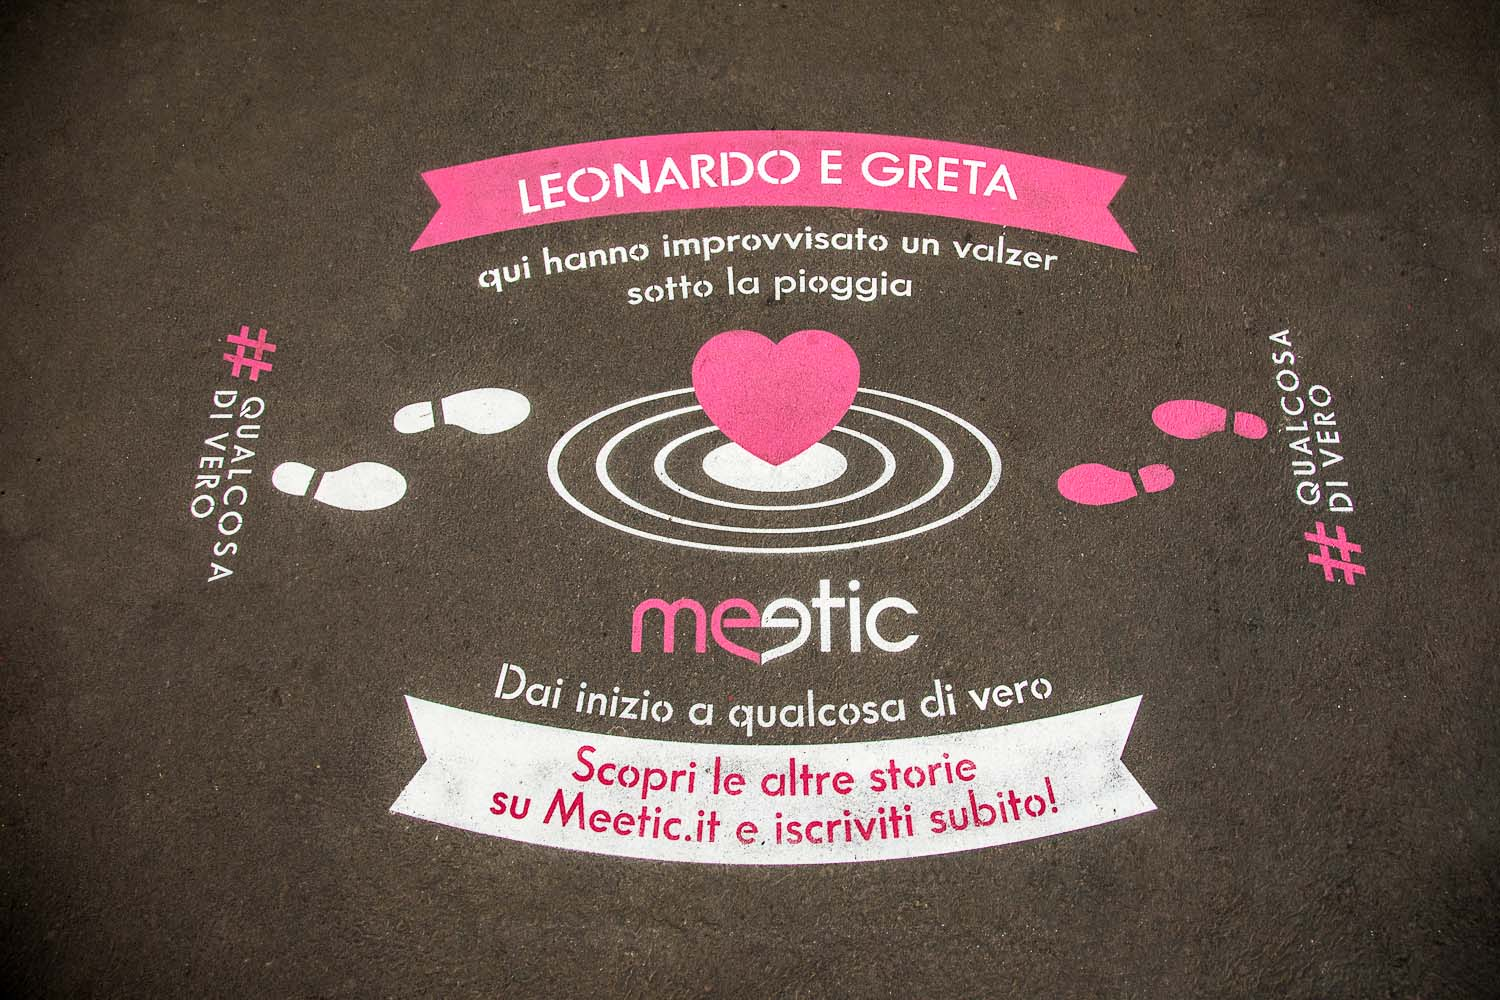 street advertisement meetic